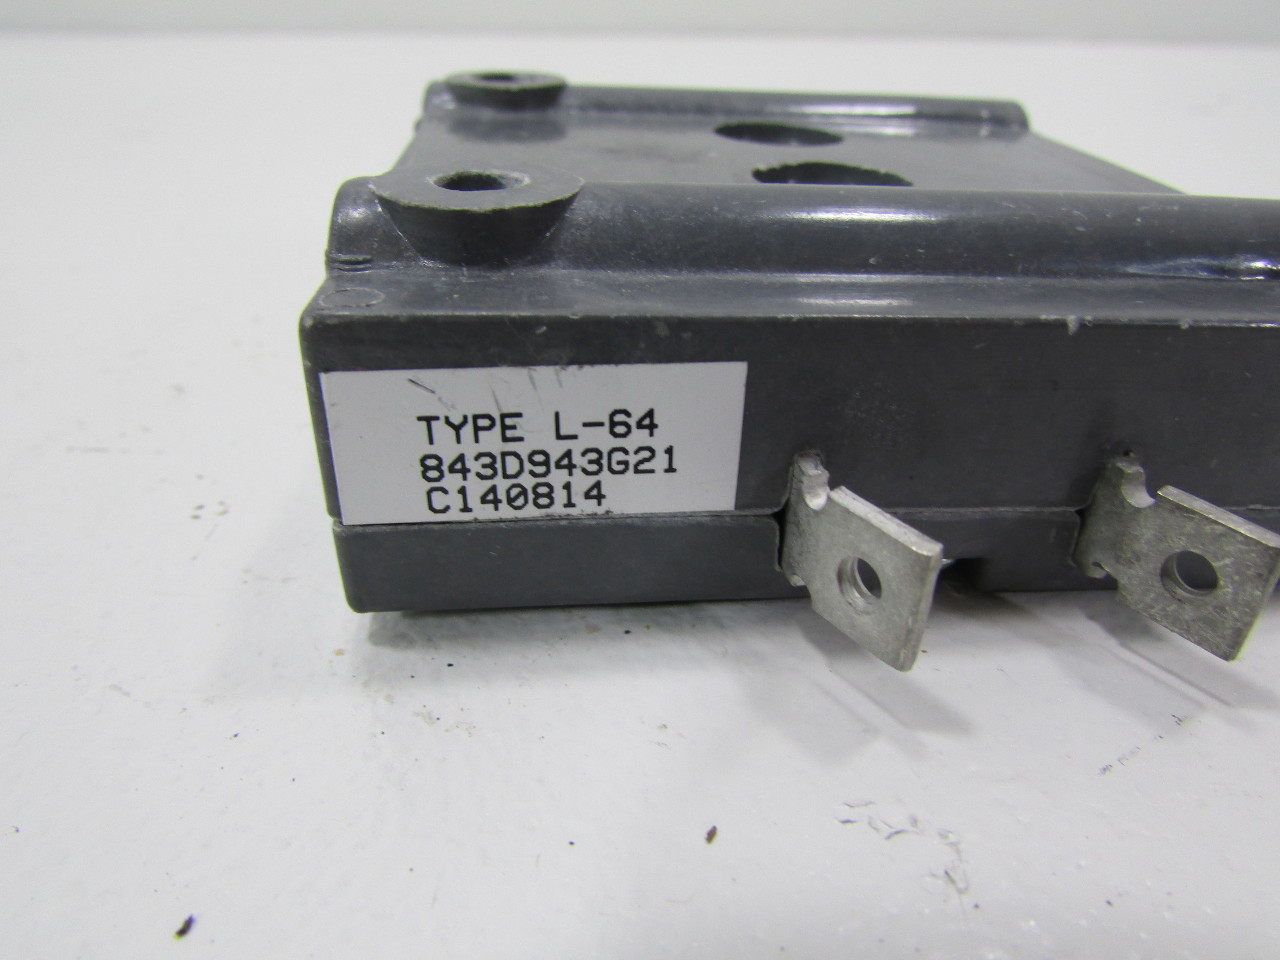 Westinghouse l 64 contactor motor starter 843d943g21 for Westinghouse motor starter parts